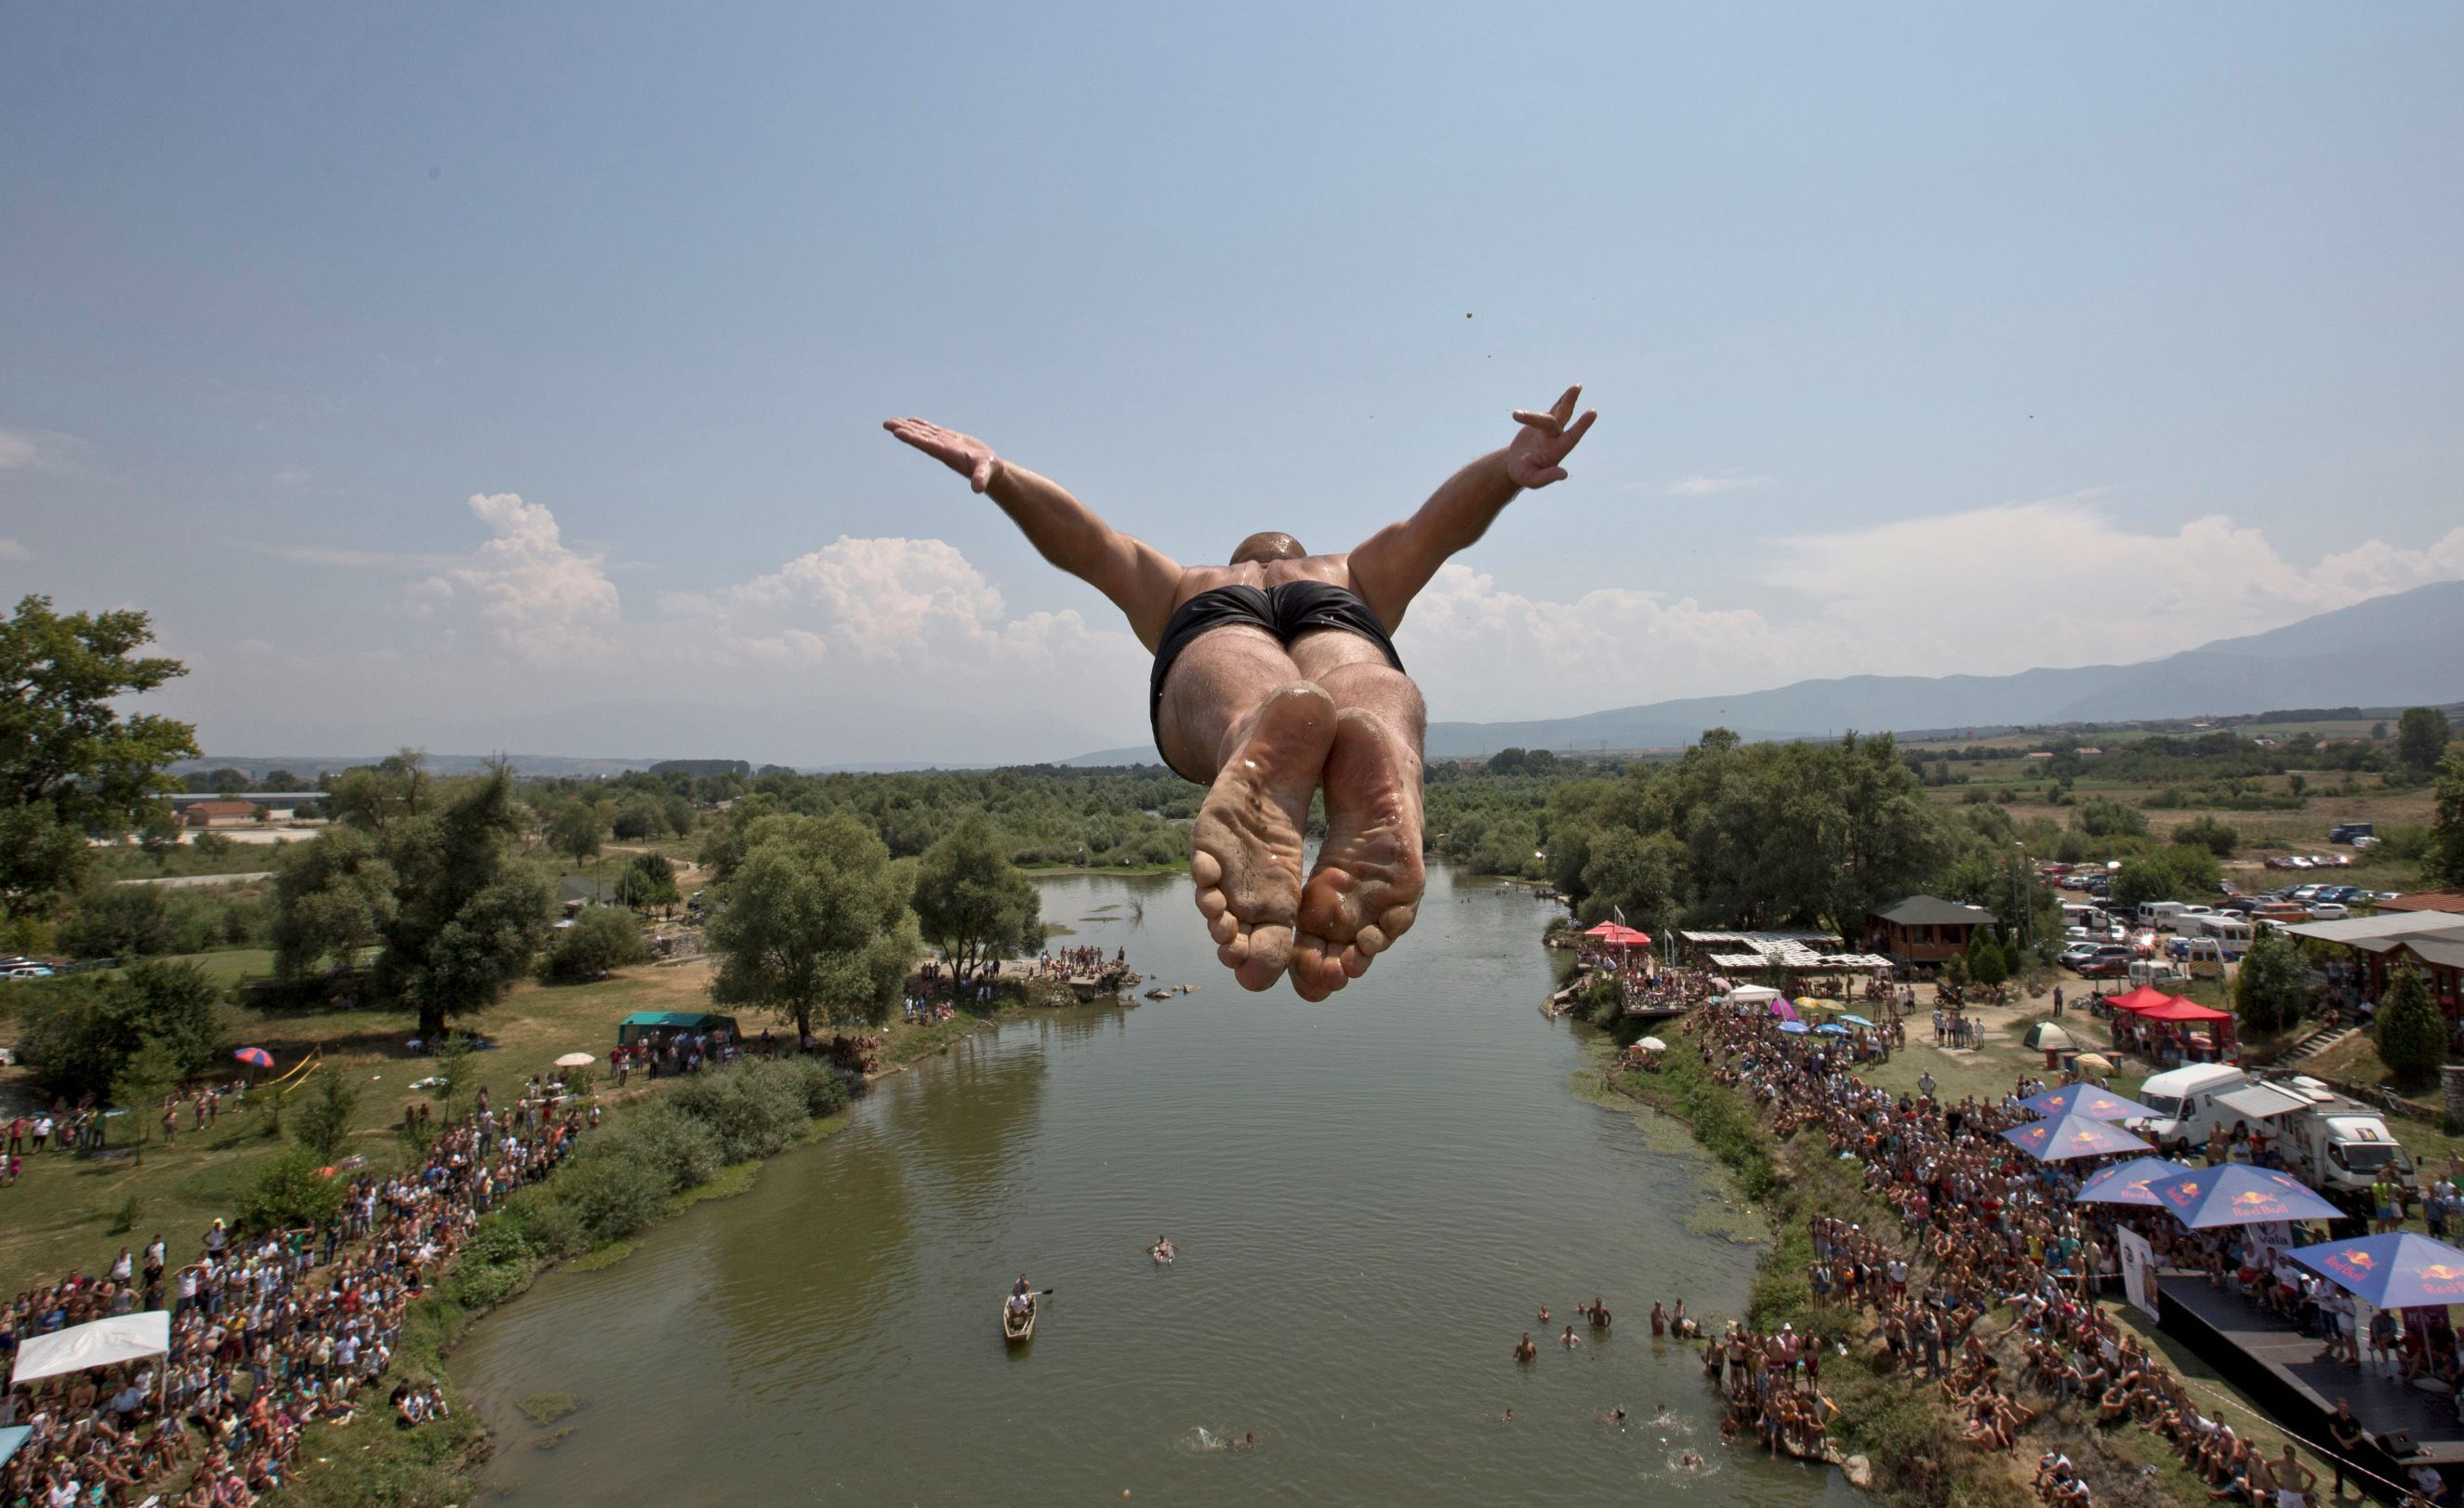 KOSOVO Spectators watch as a diver jumps from the Ura e